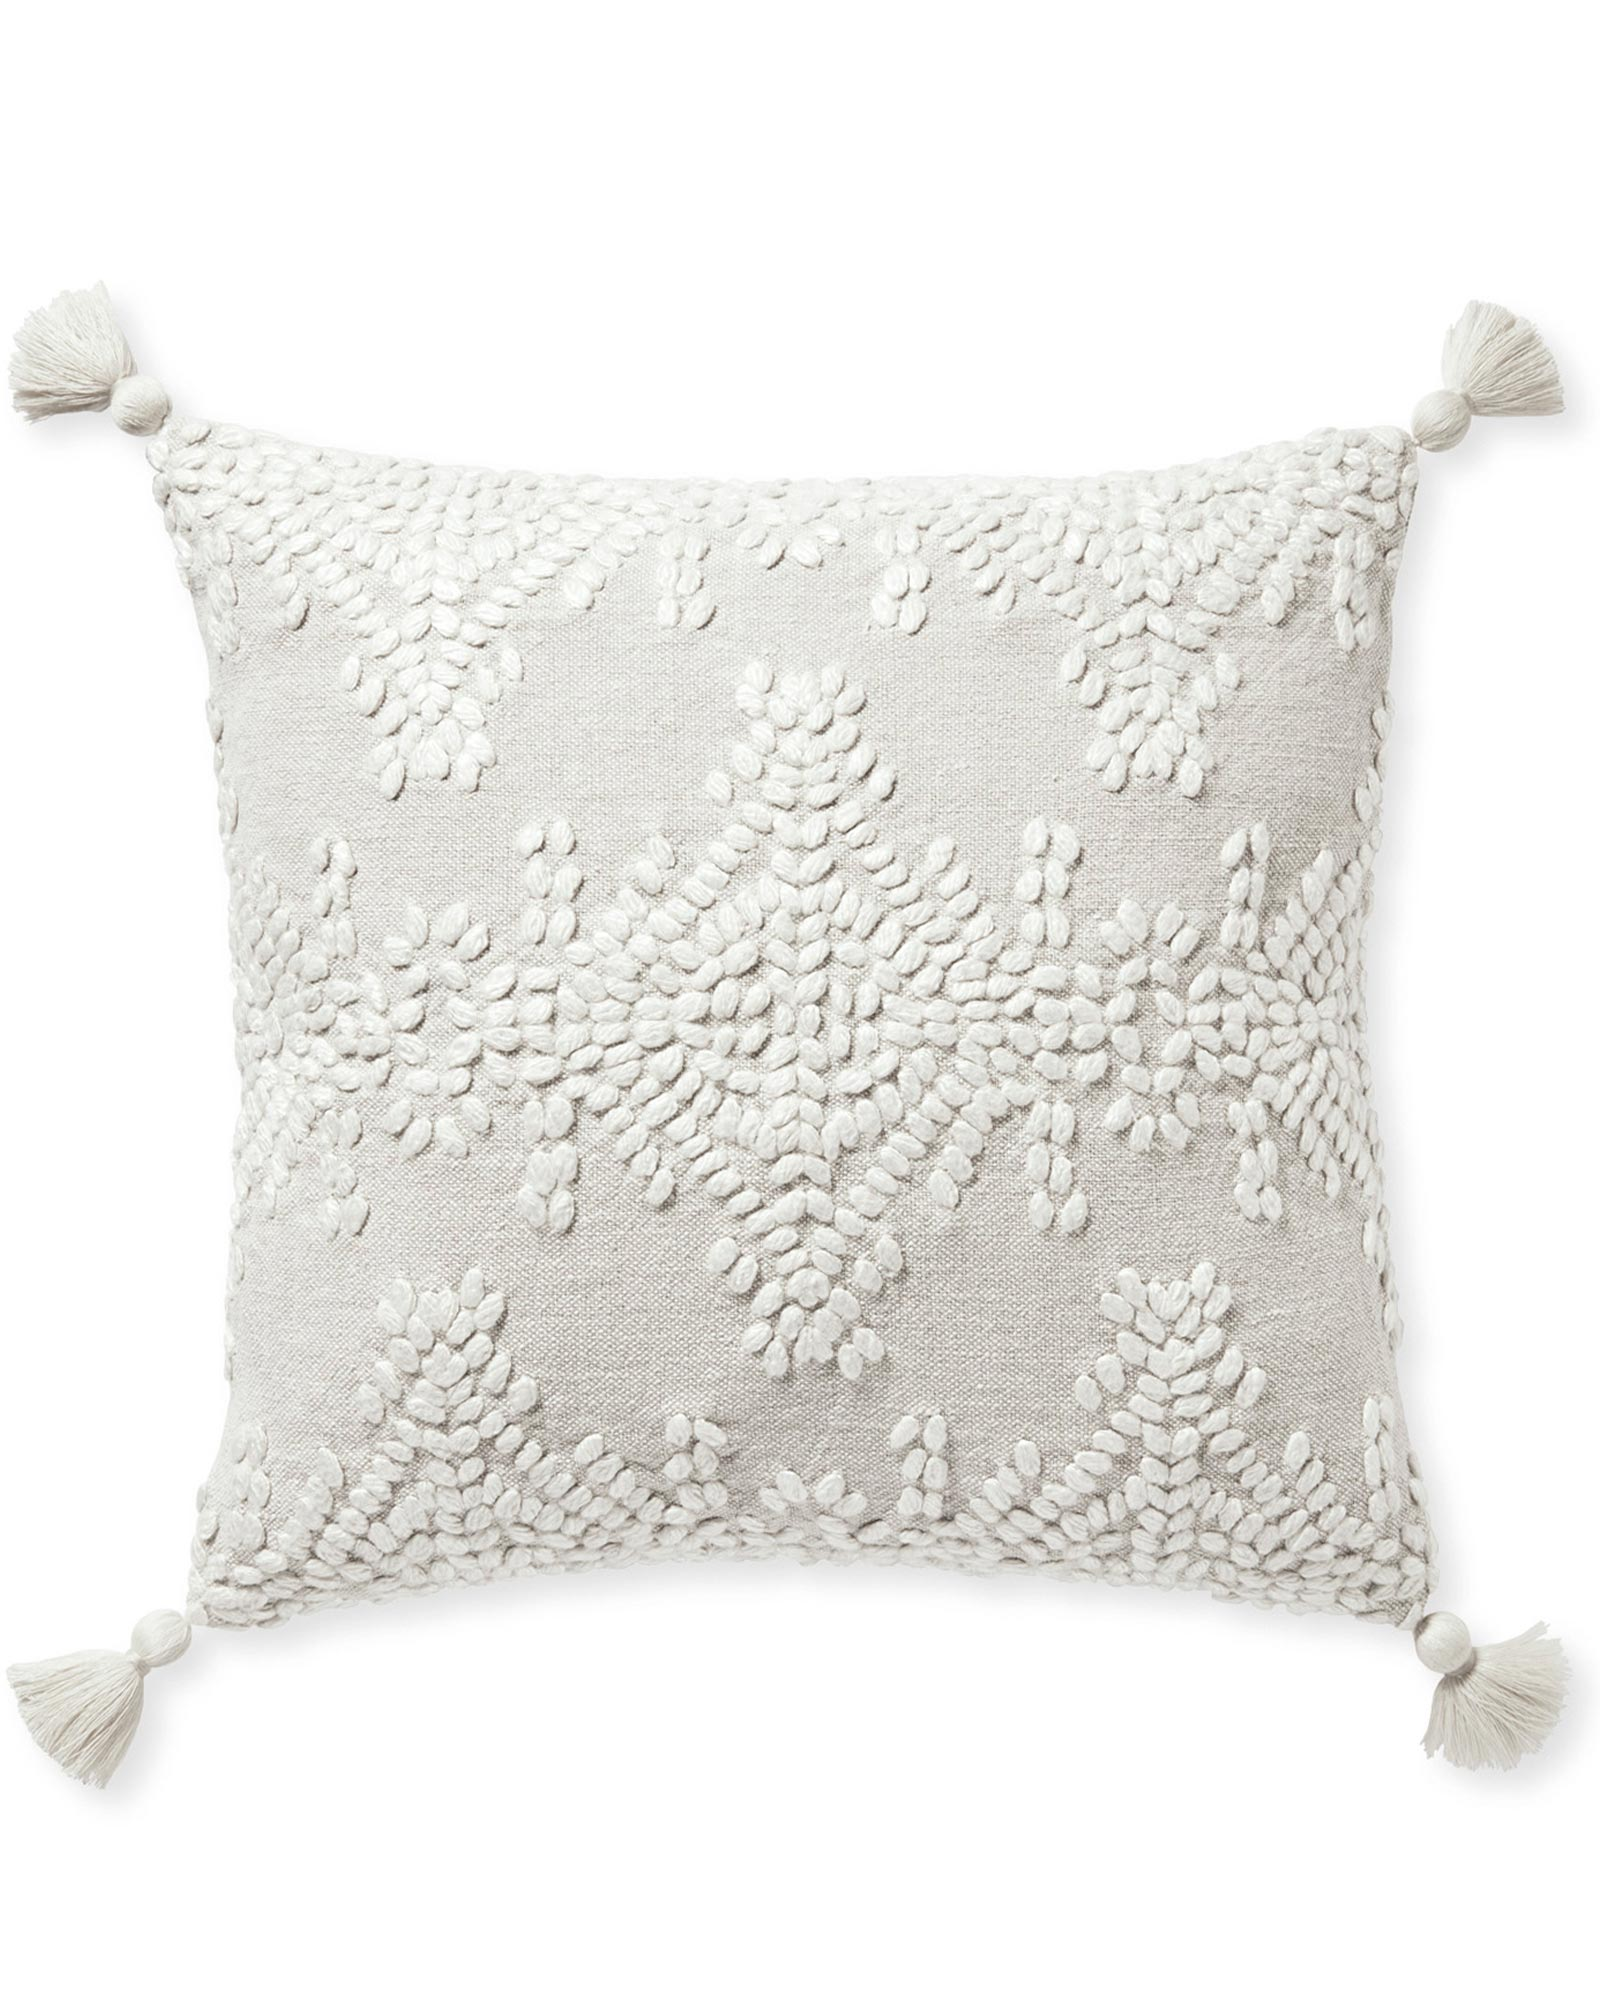 Hillview Pillow Cover, Sand